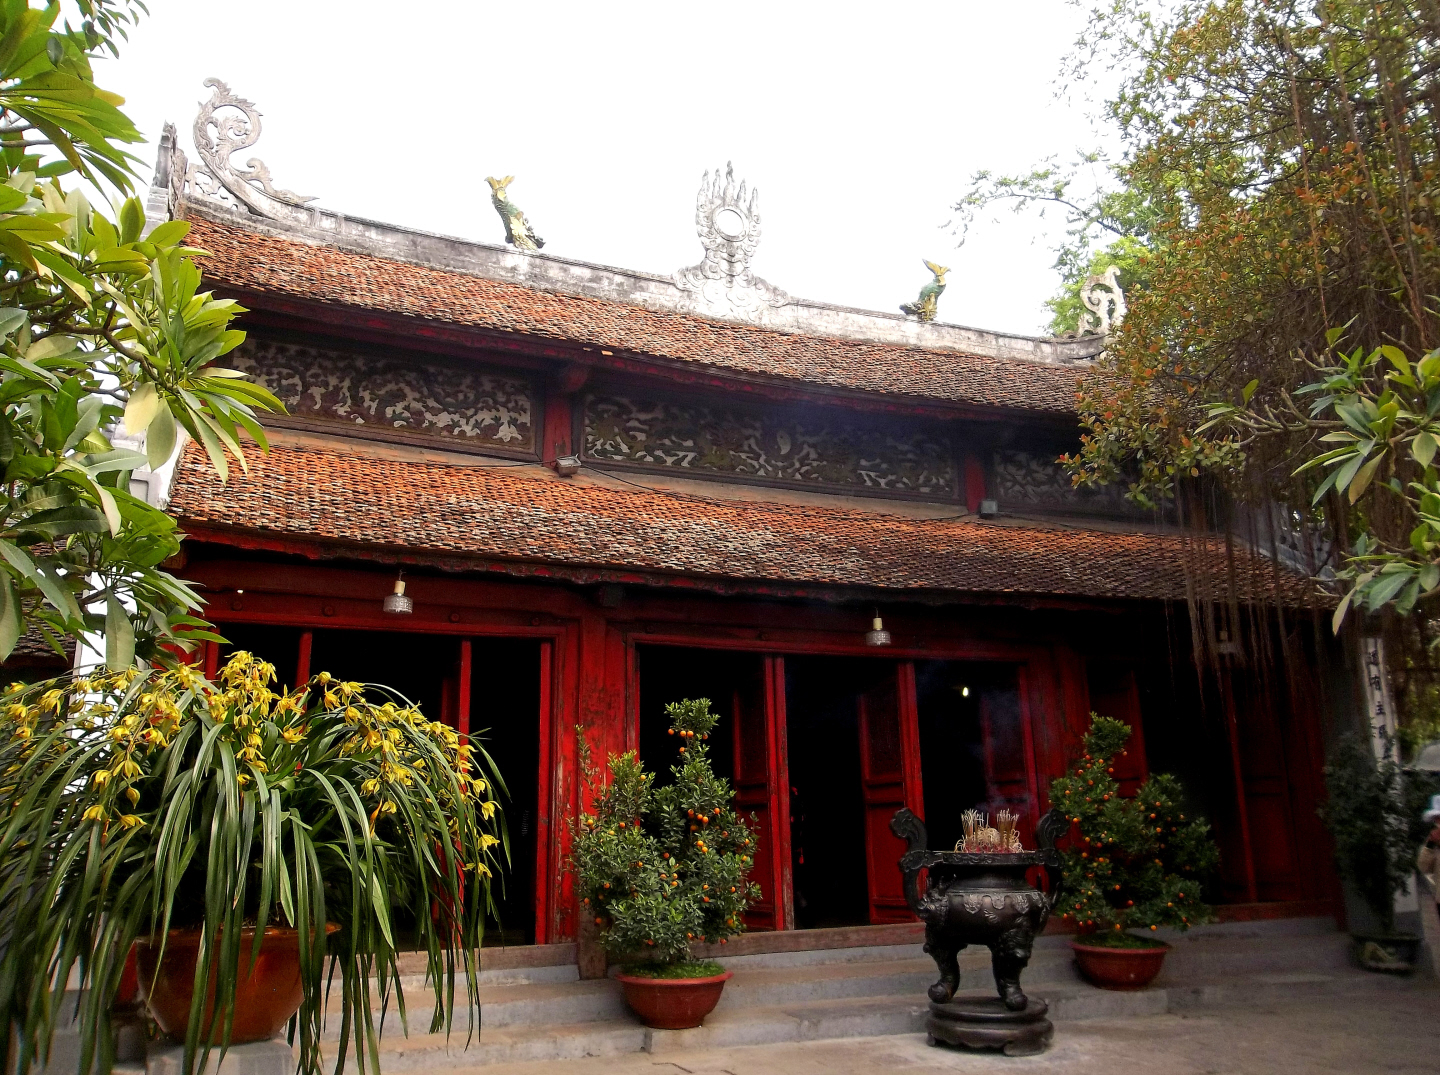 Ngoc Son Temple - Temple of Jade Mountain -on Hoan Kiem Lake in Hanoi, Viet Nam (19th Cen)